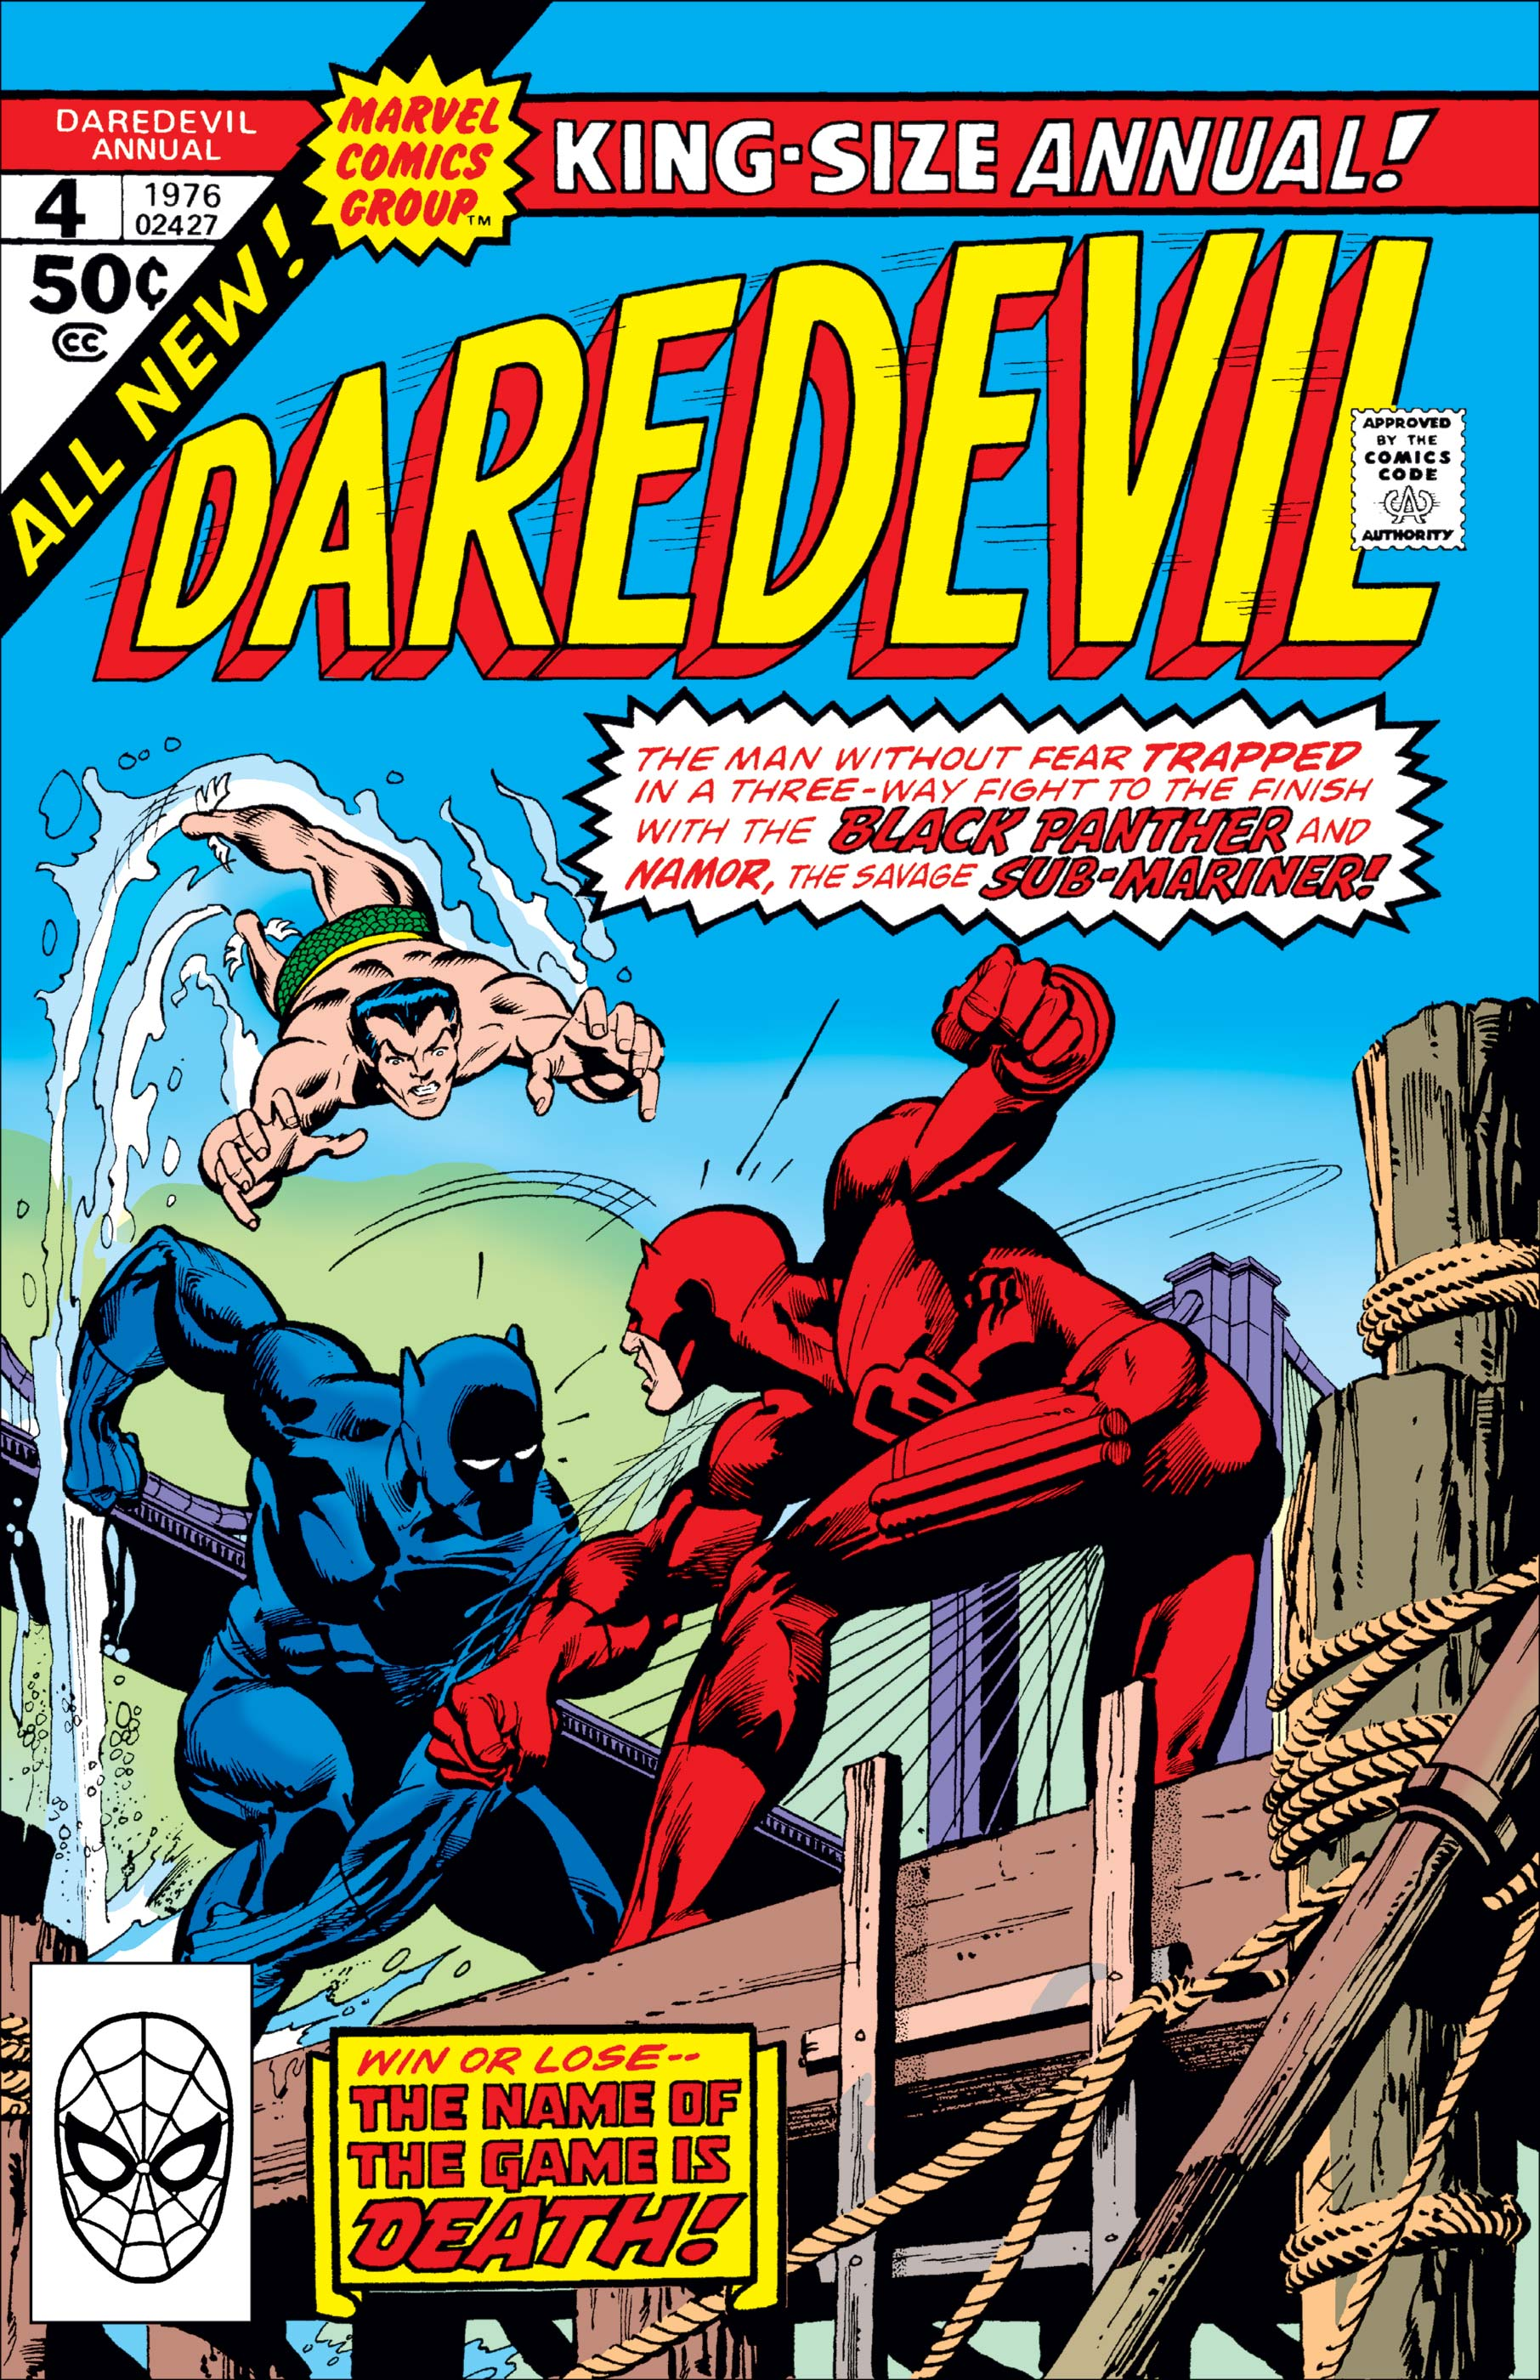 Daredevil Annual (1967) #4